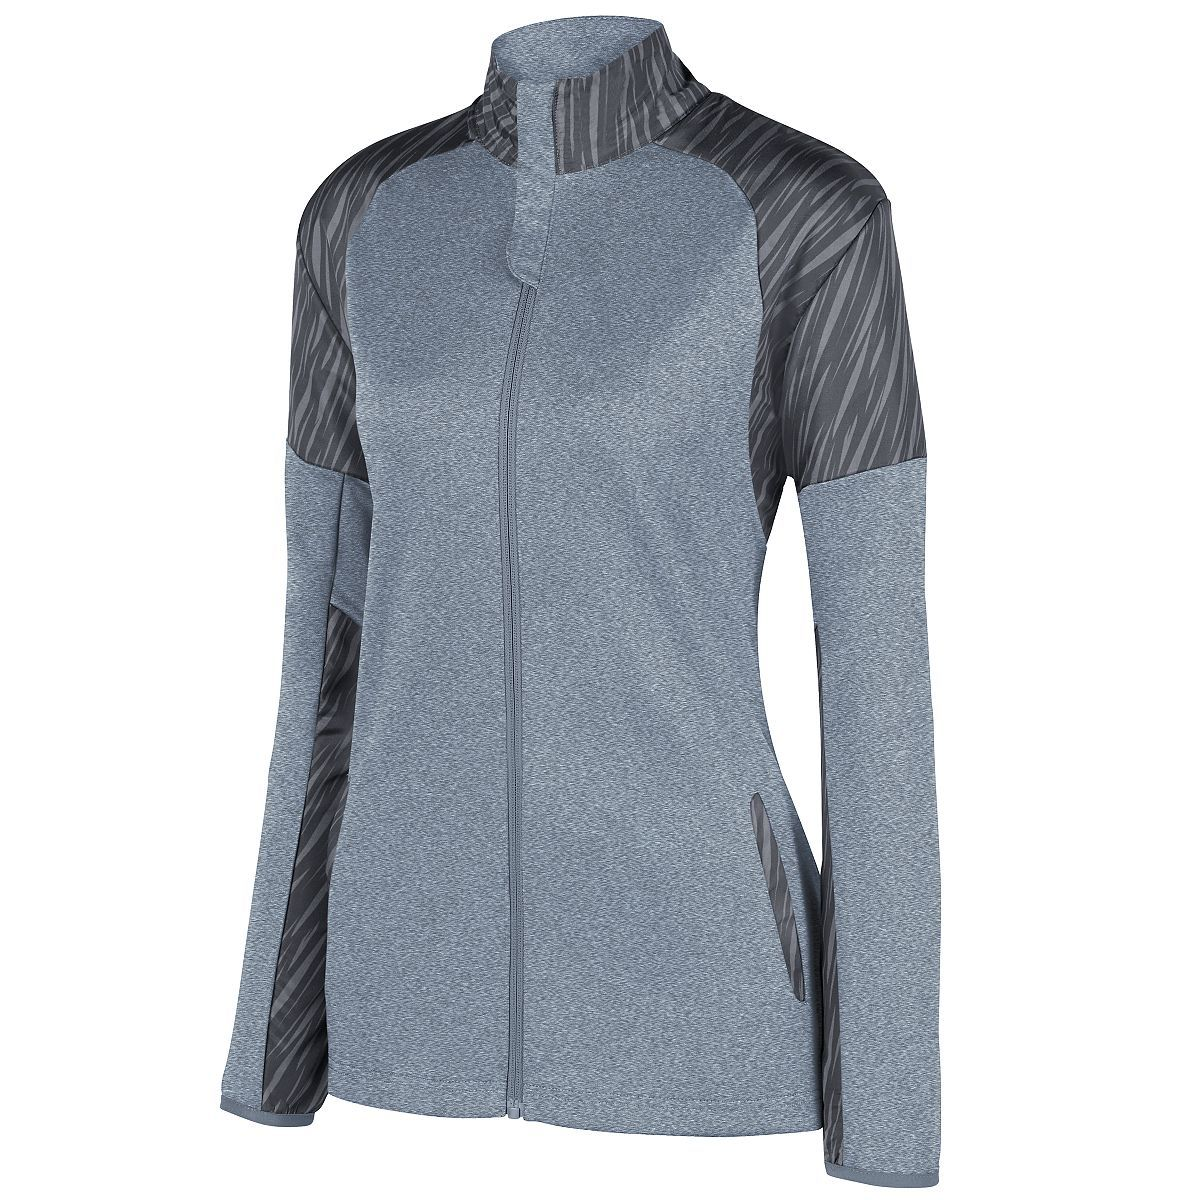 Ladies Breaker Jacket - GRAPHITE HEATHER/SLATE